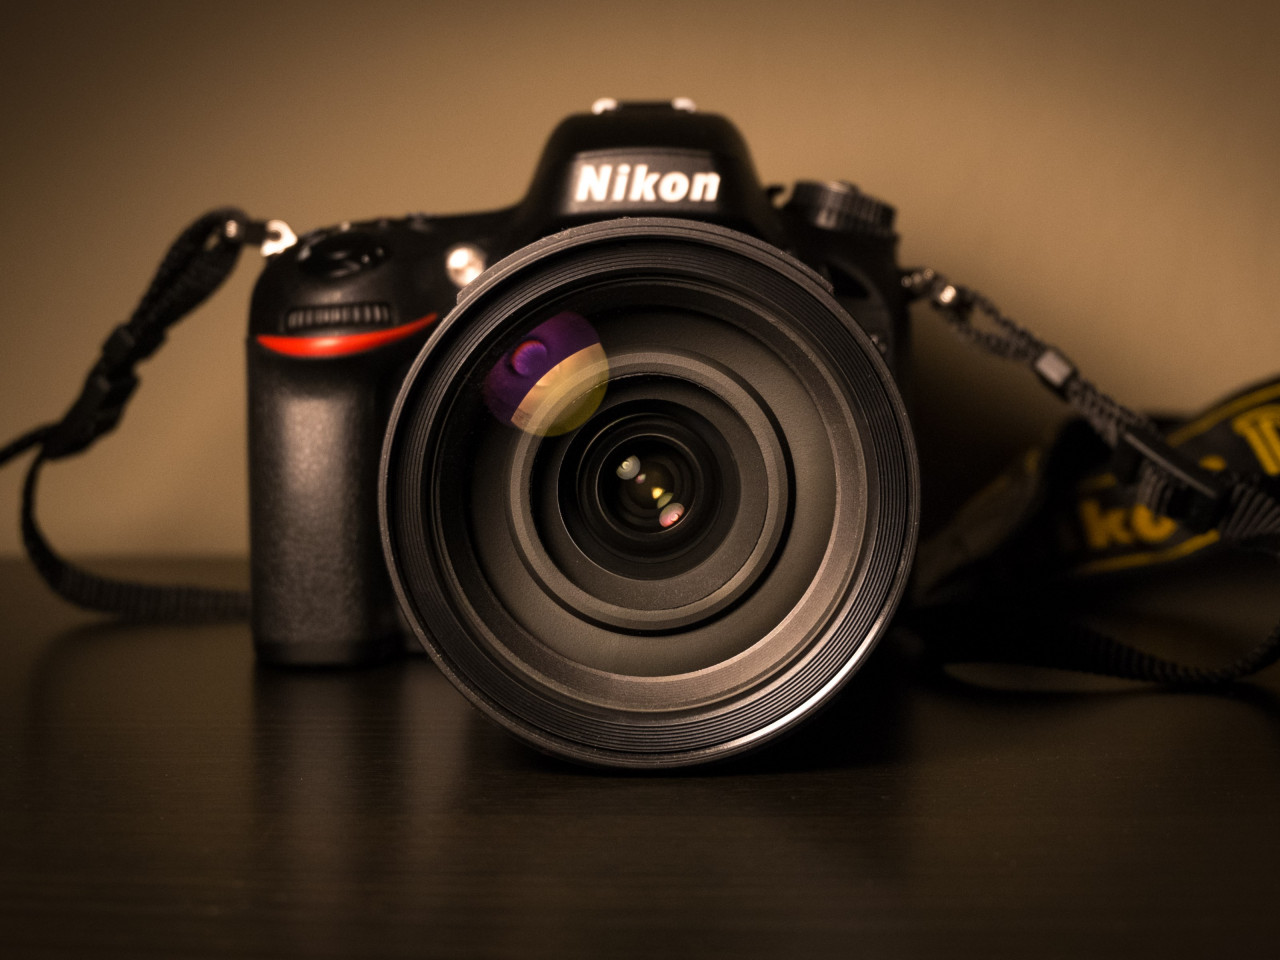 Nikon DSLR Camera | 1280x960 wallpaper